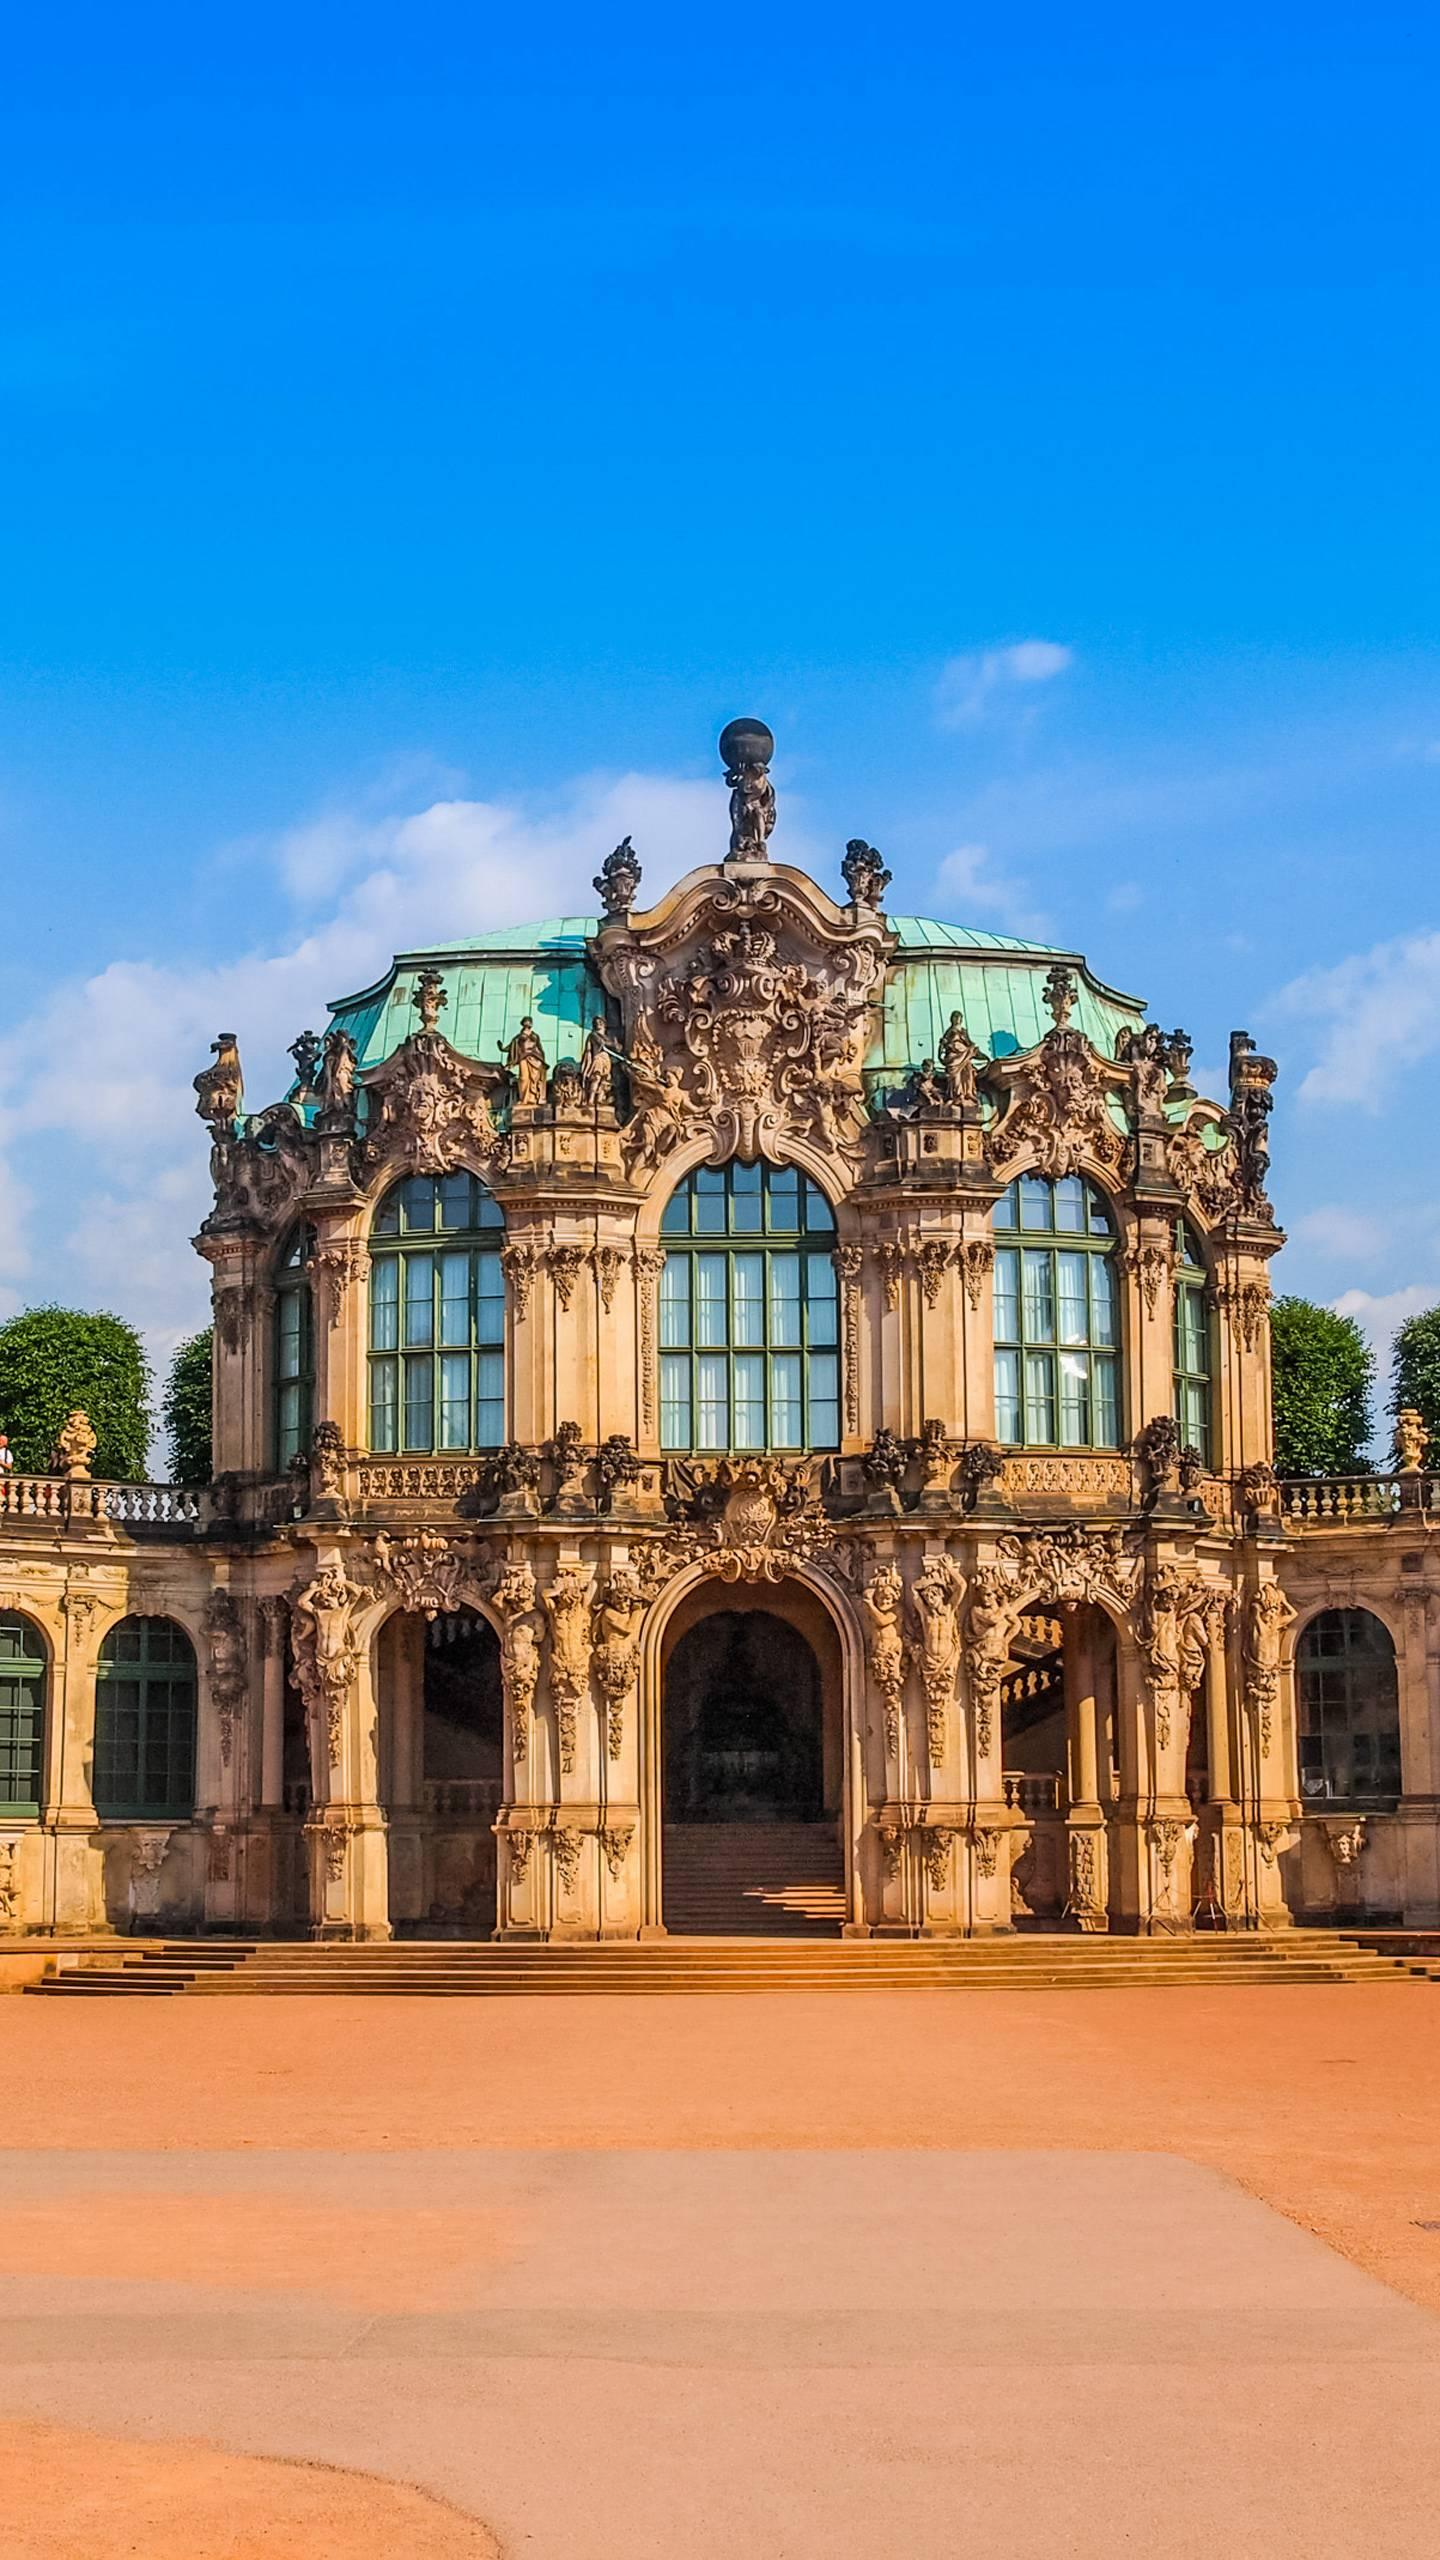 Dresden - Zwinger Palace. Germany's most striking Baroque building, also a symbol of Dresden, was built in 1709.